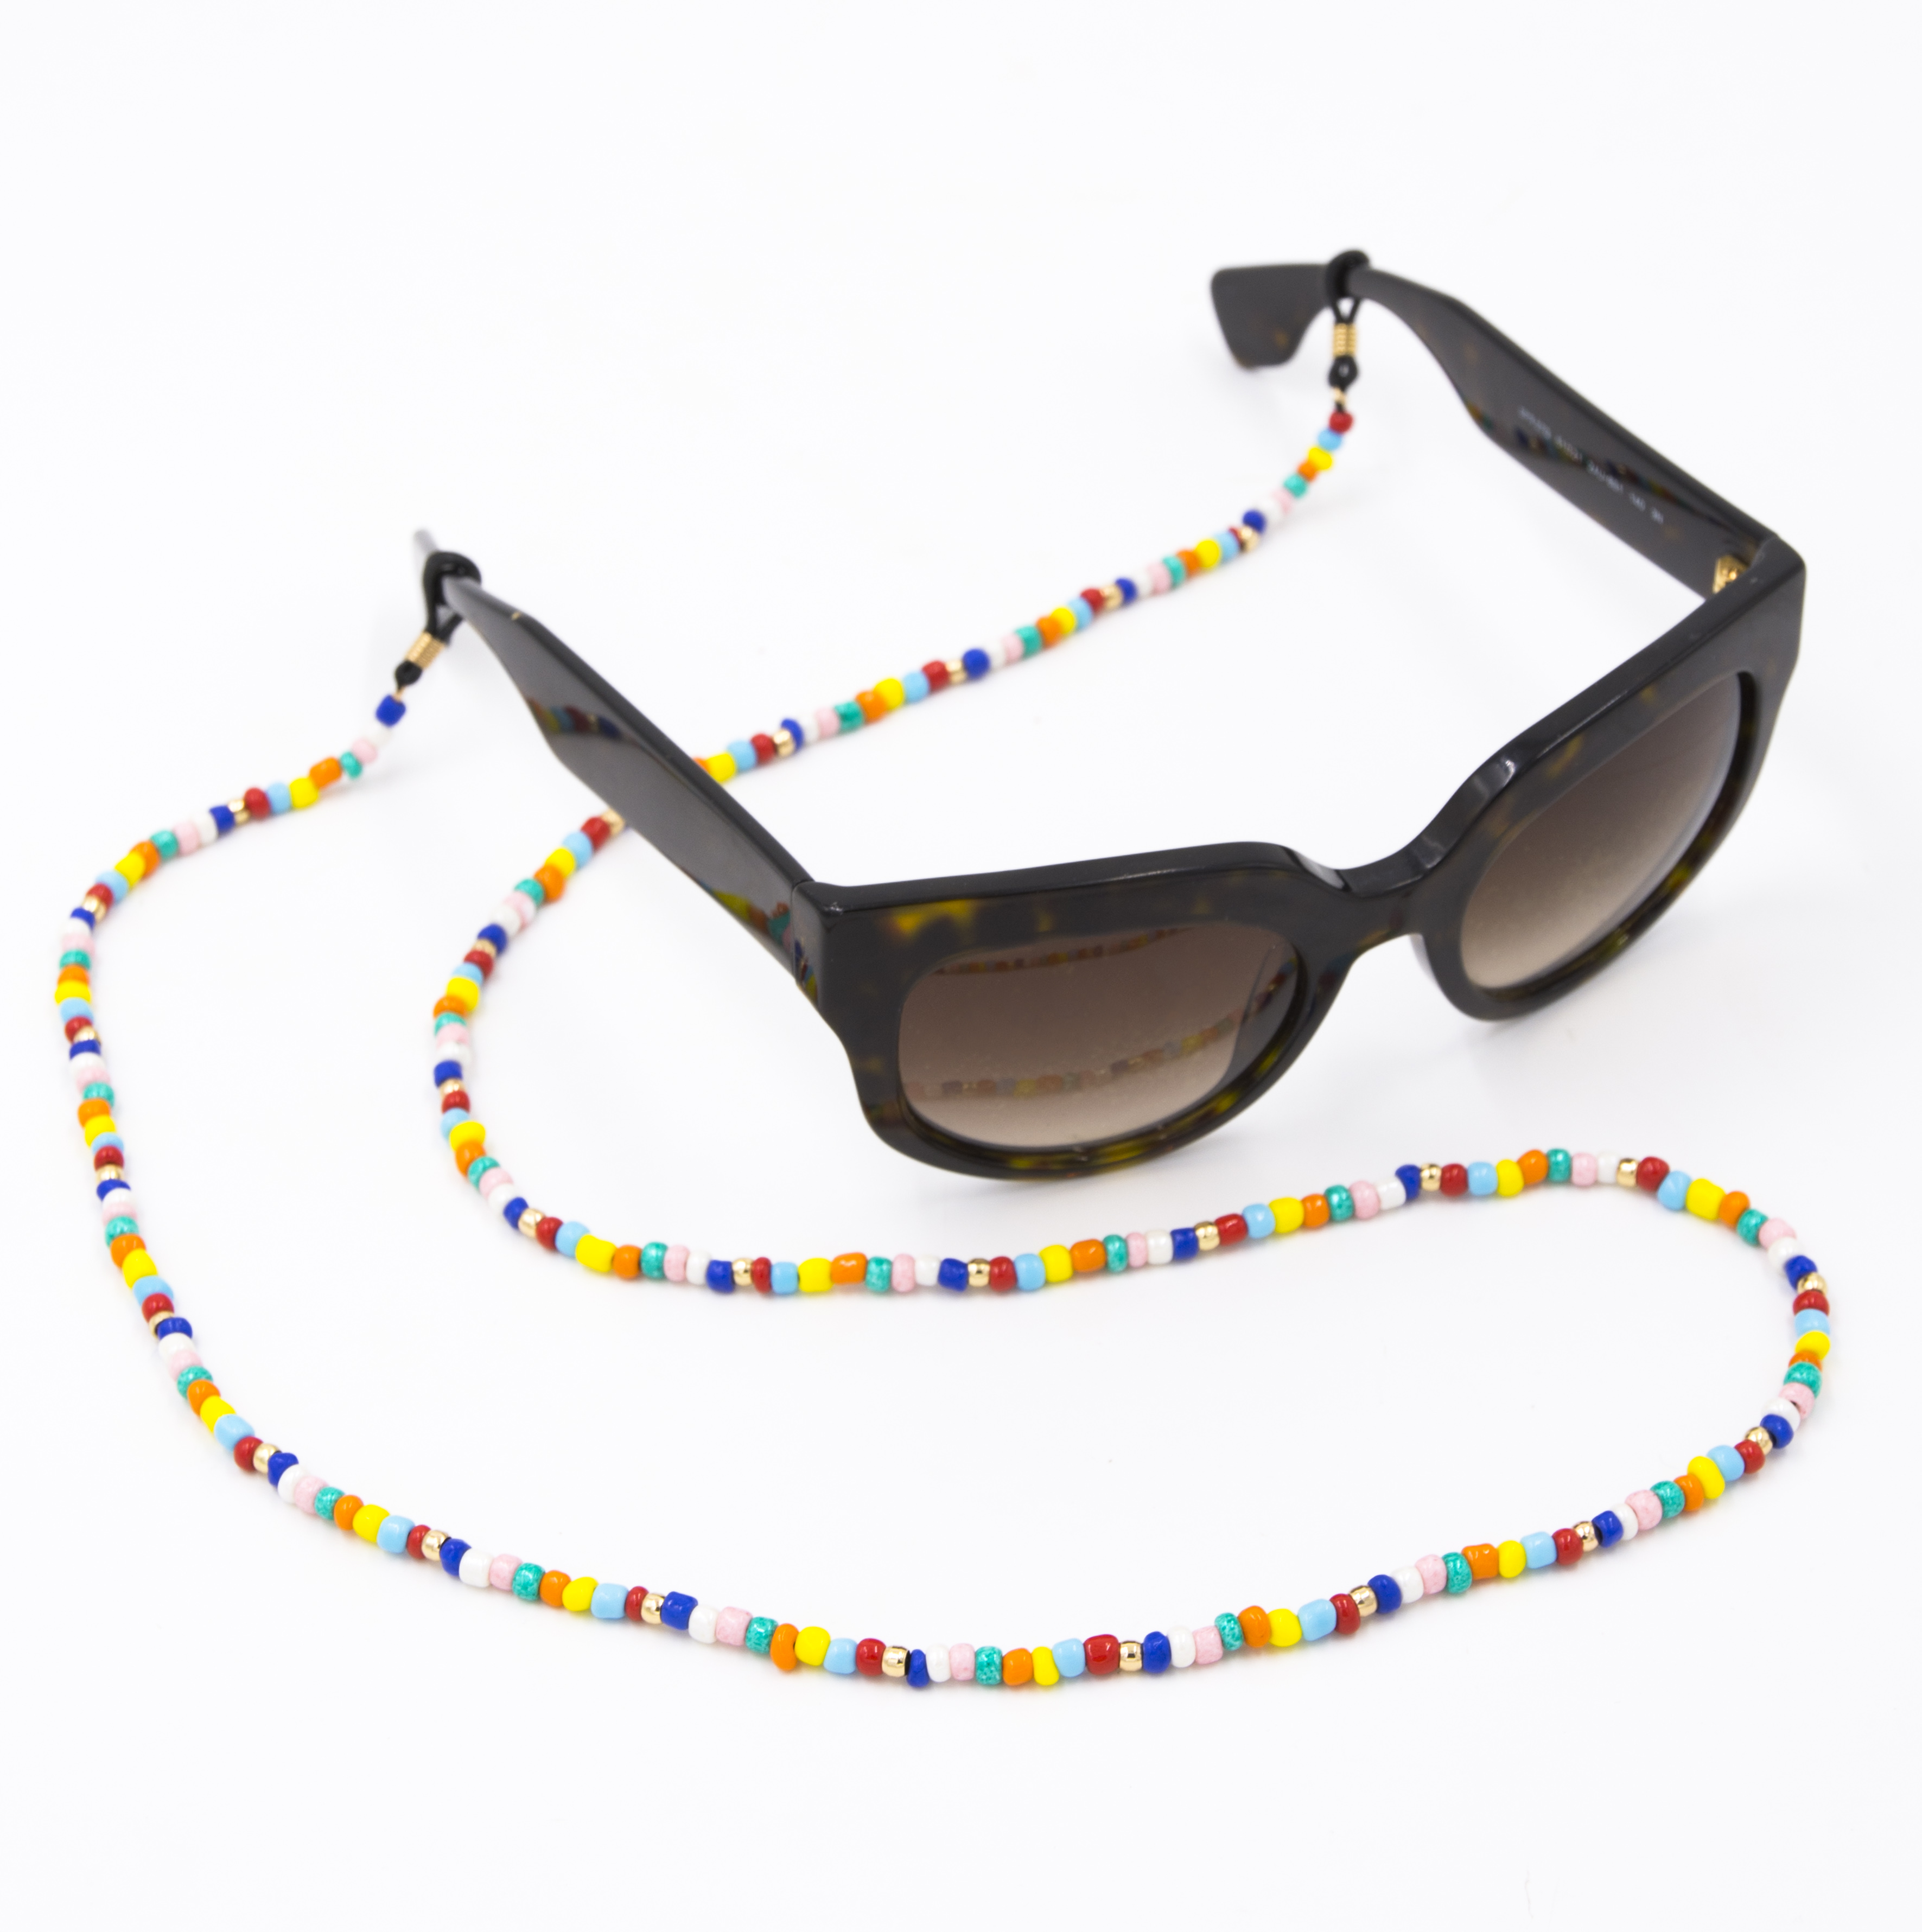 227d4361dc06 Glasses Strap Pearls - Rainbow | Bags & Accessories | IPHORIA